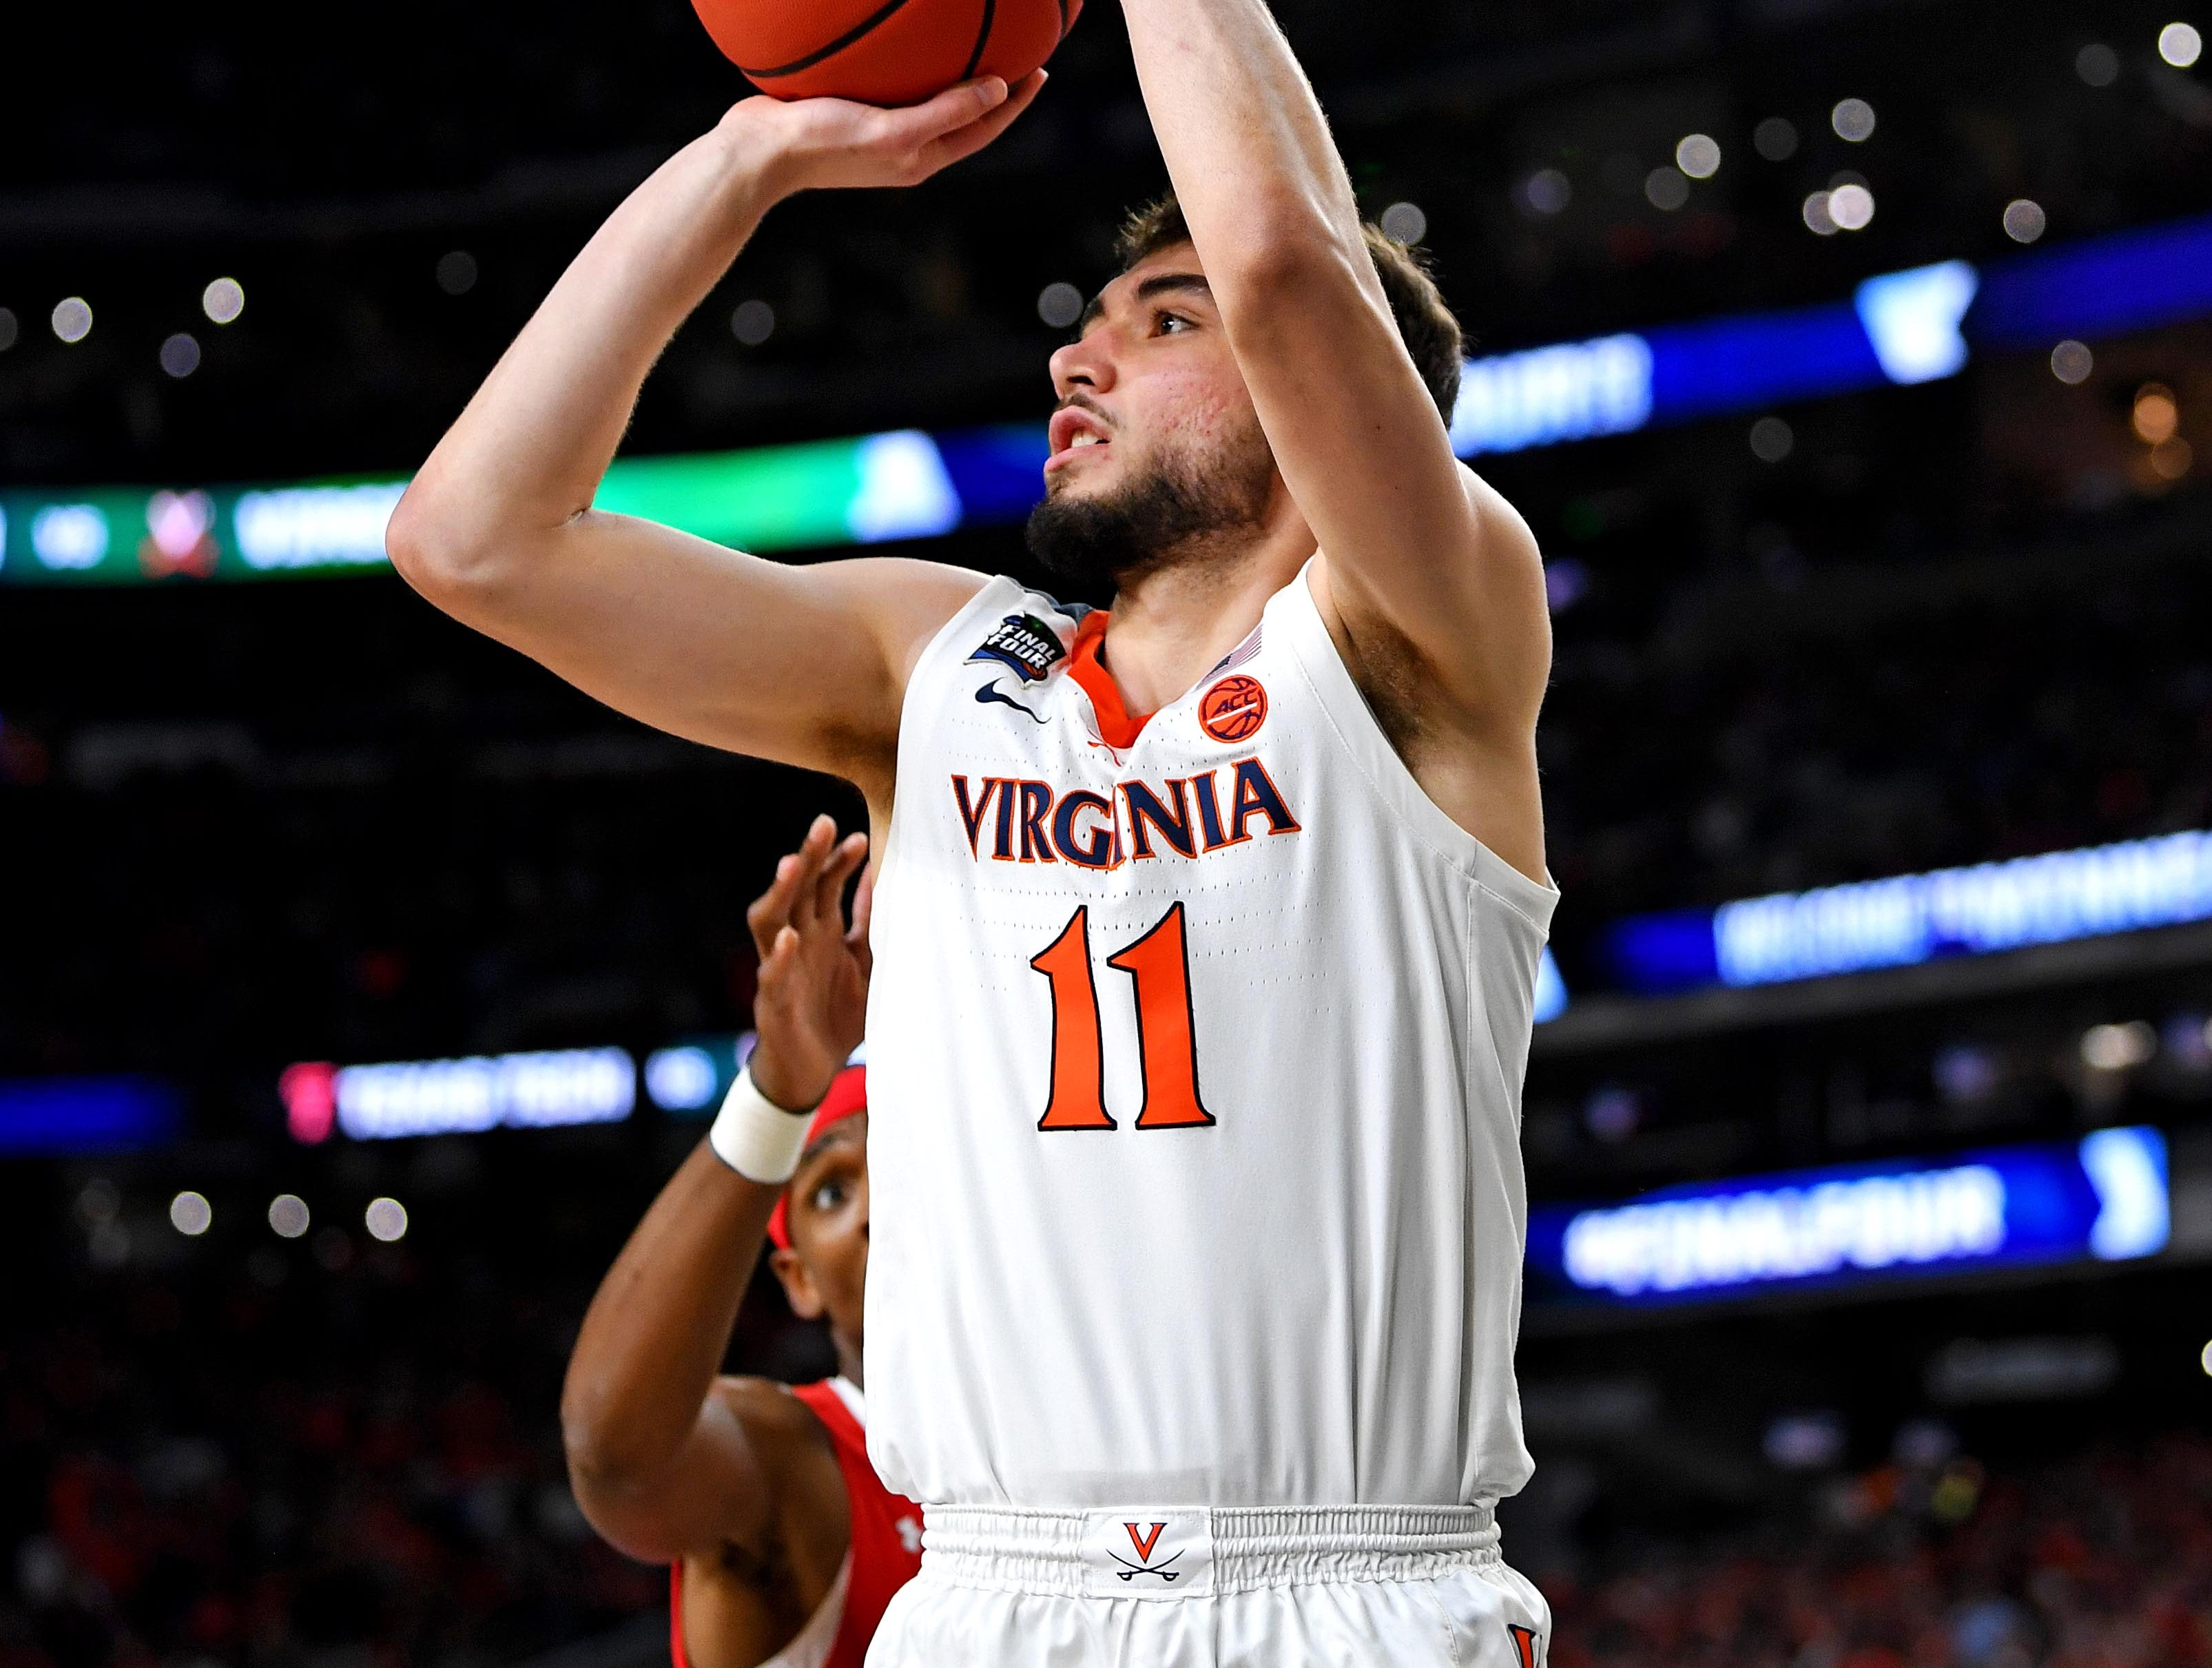 Apr 8, 2019; Minneapolis, MN, USA; Virginia Cavaliers guard Ty Jerome (11) shoots the ball against Texas Tech Red Raiders forward Tariq Owens (11) during the second half in the championship game of the 2019 men's Final Four at US Bank Stadium. Mandatory Credit: Bob Donnan-USA TODAY Sports